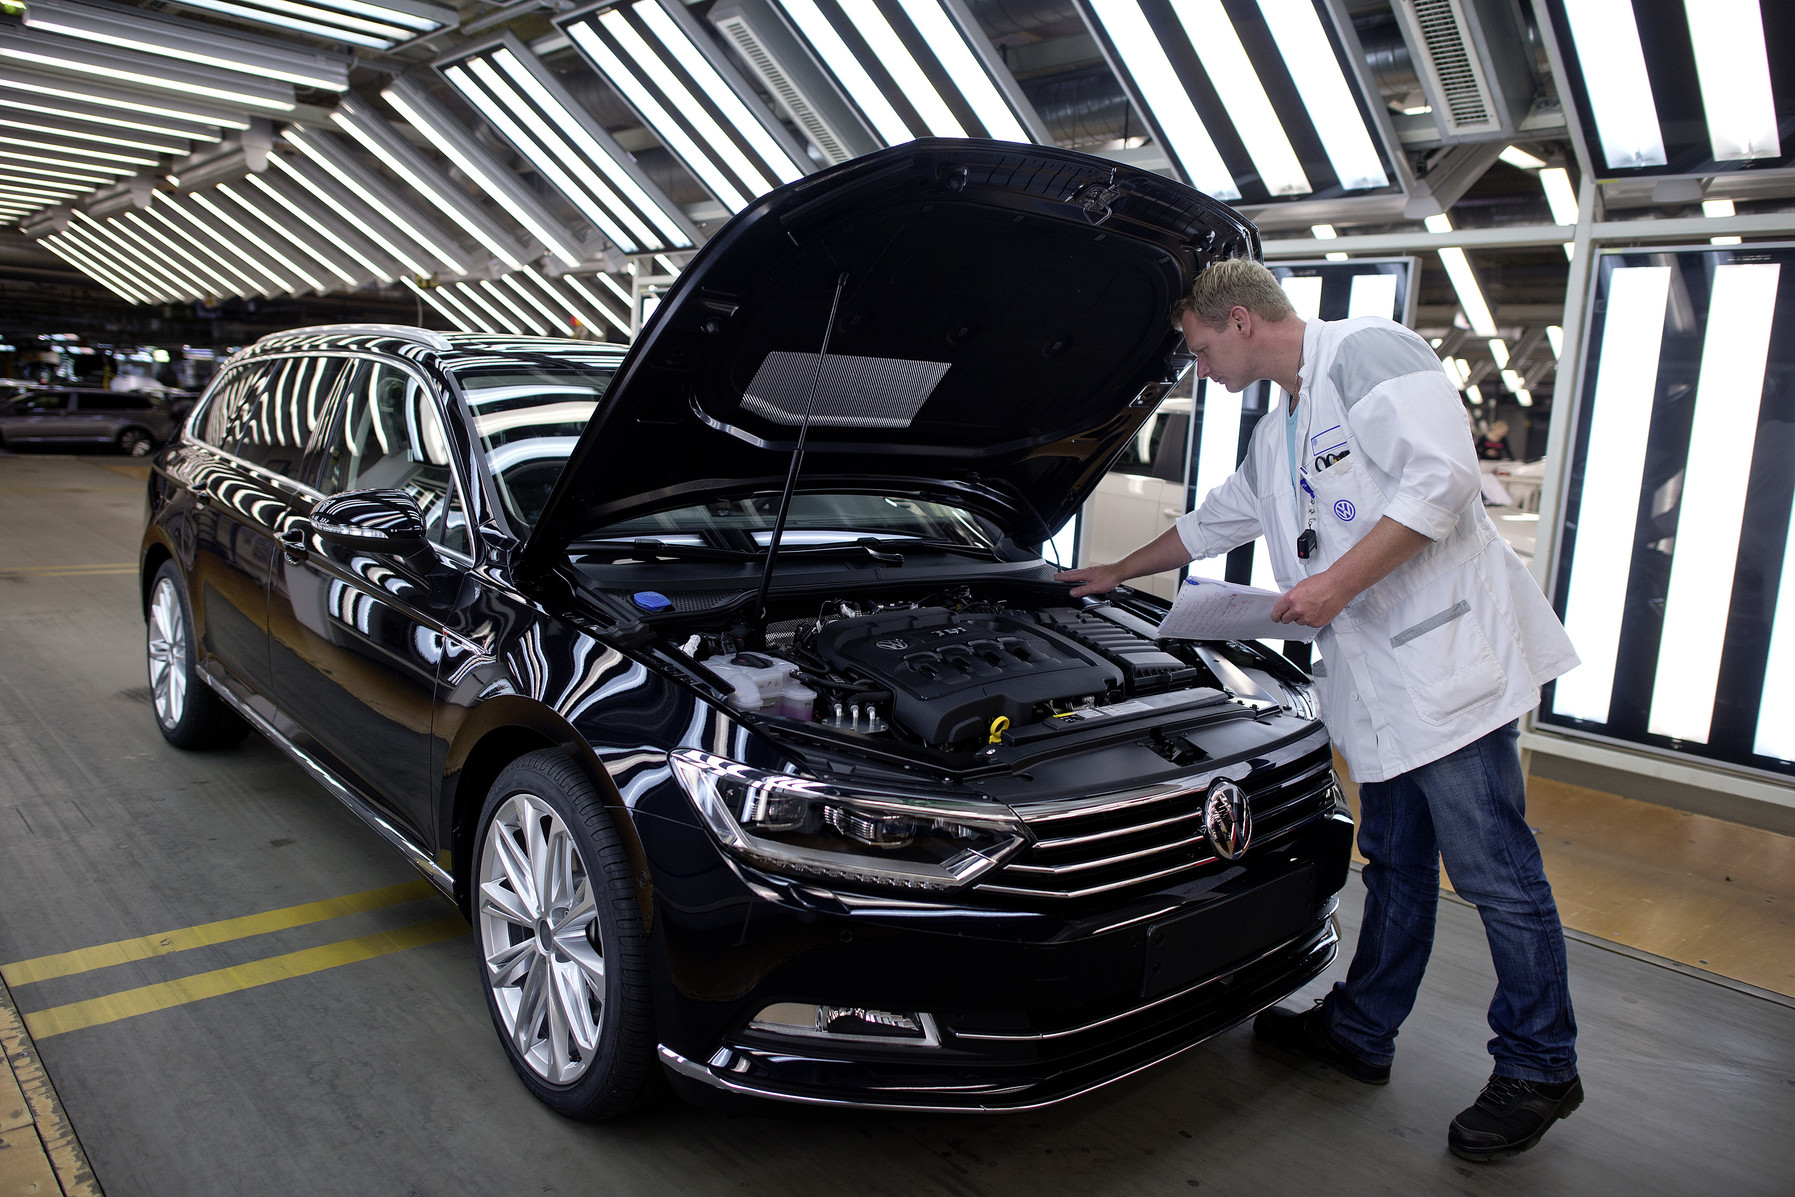 Volkswagen Passat Variant produktion: Final inspection for the Passat Variant